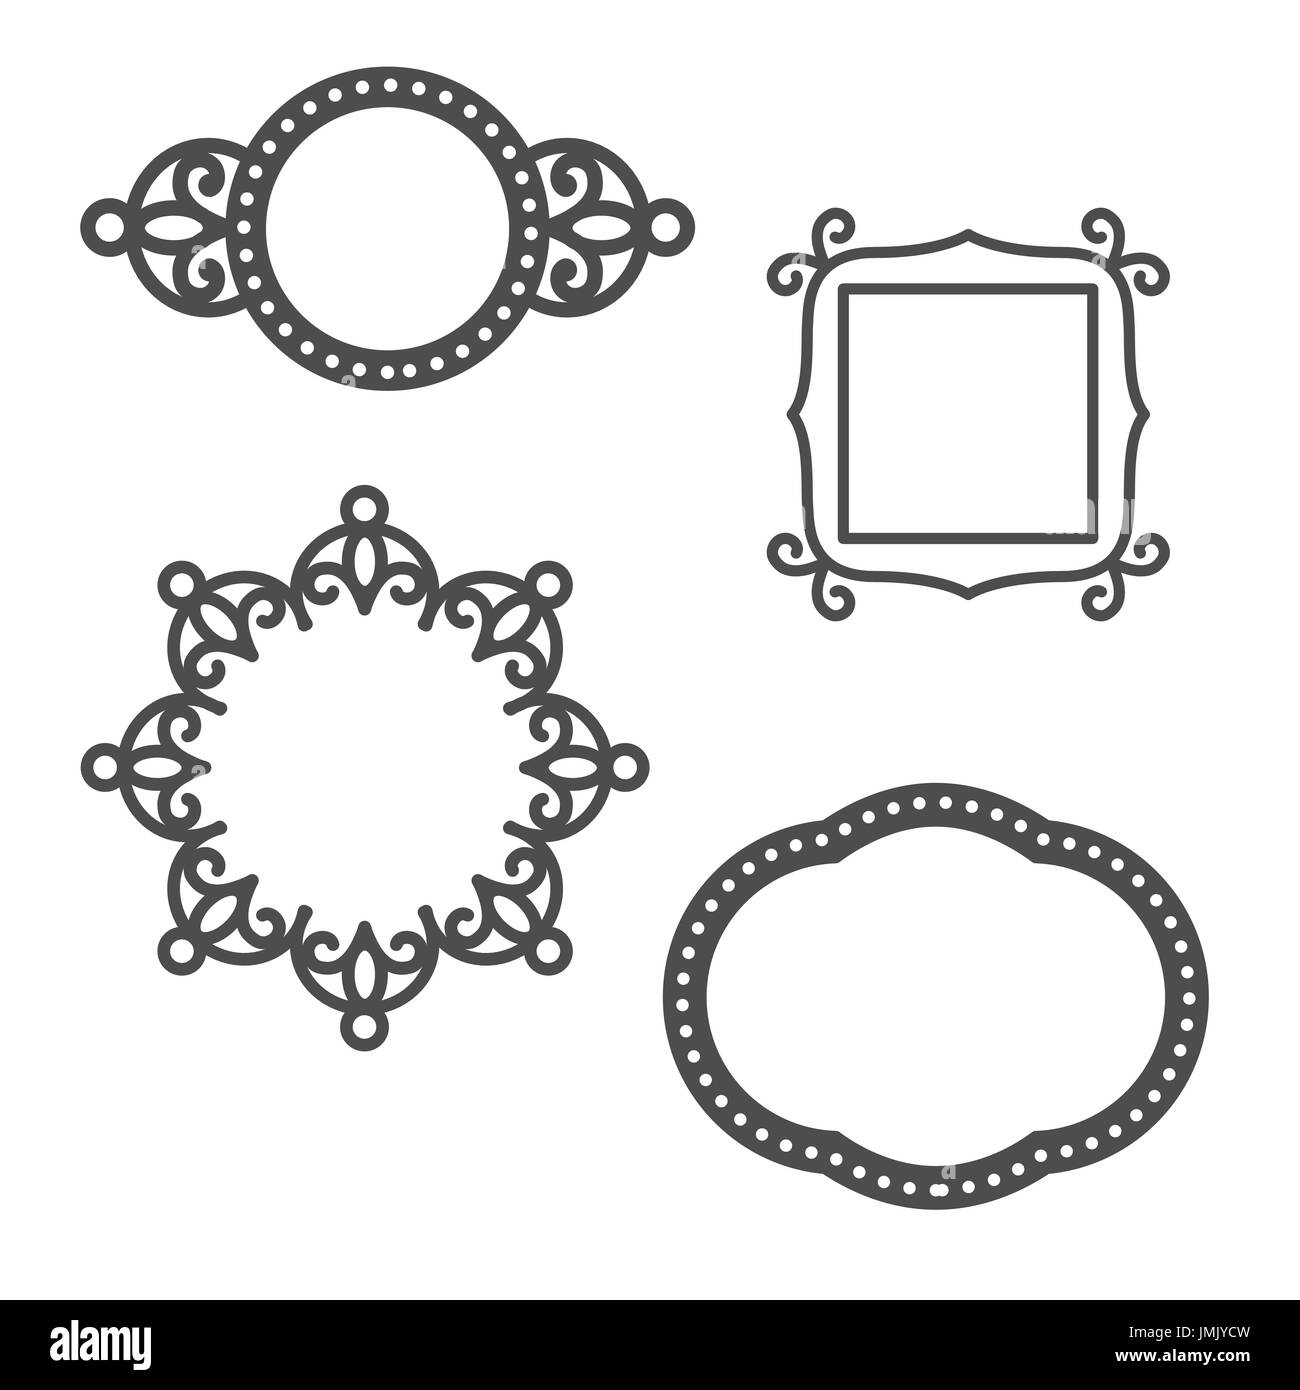 Ogee Frames For Use On Greeting Cards Or Wedding Invitations Stock